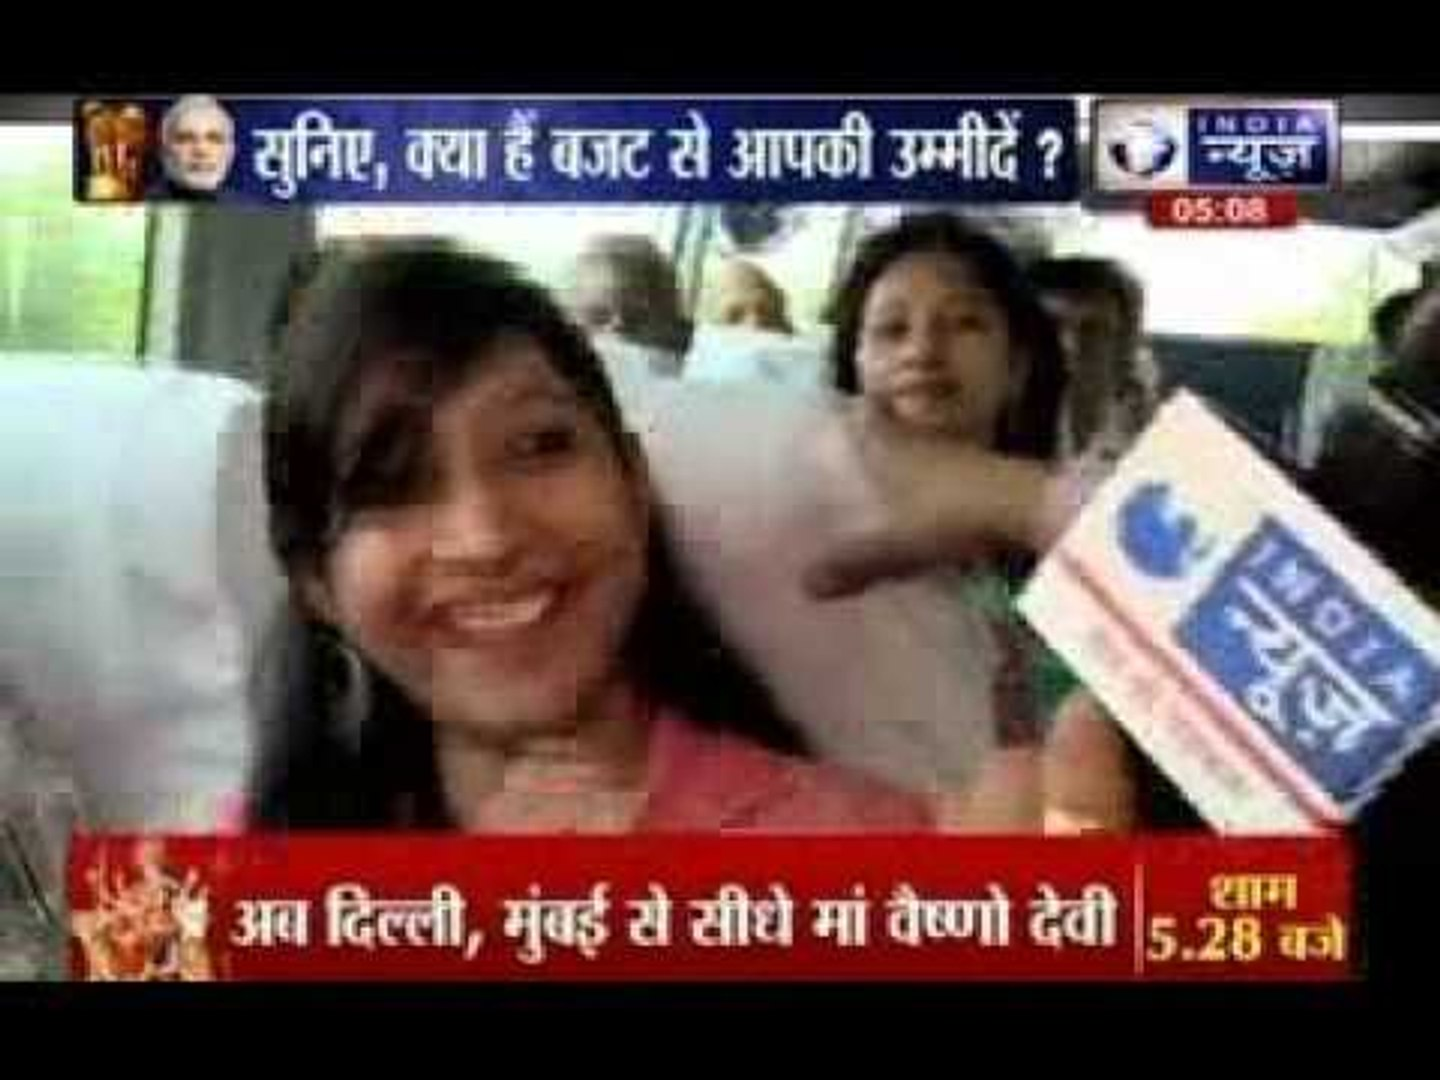 India News Exclusive budget bus